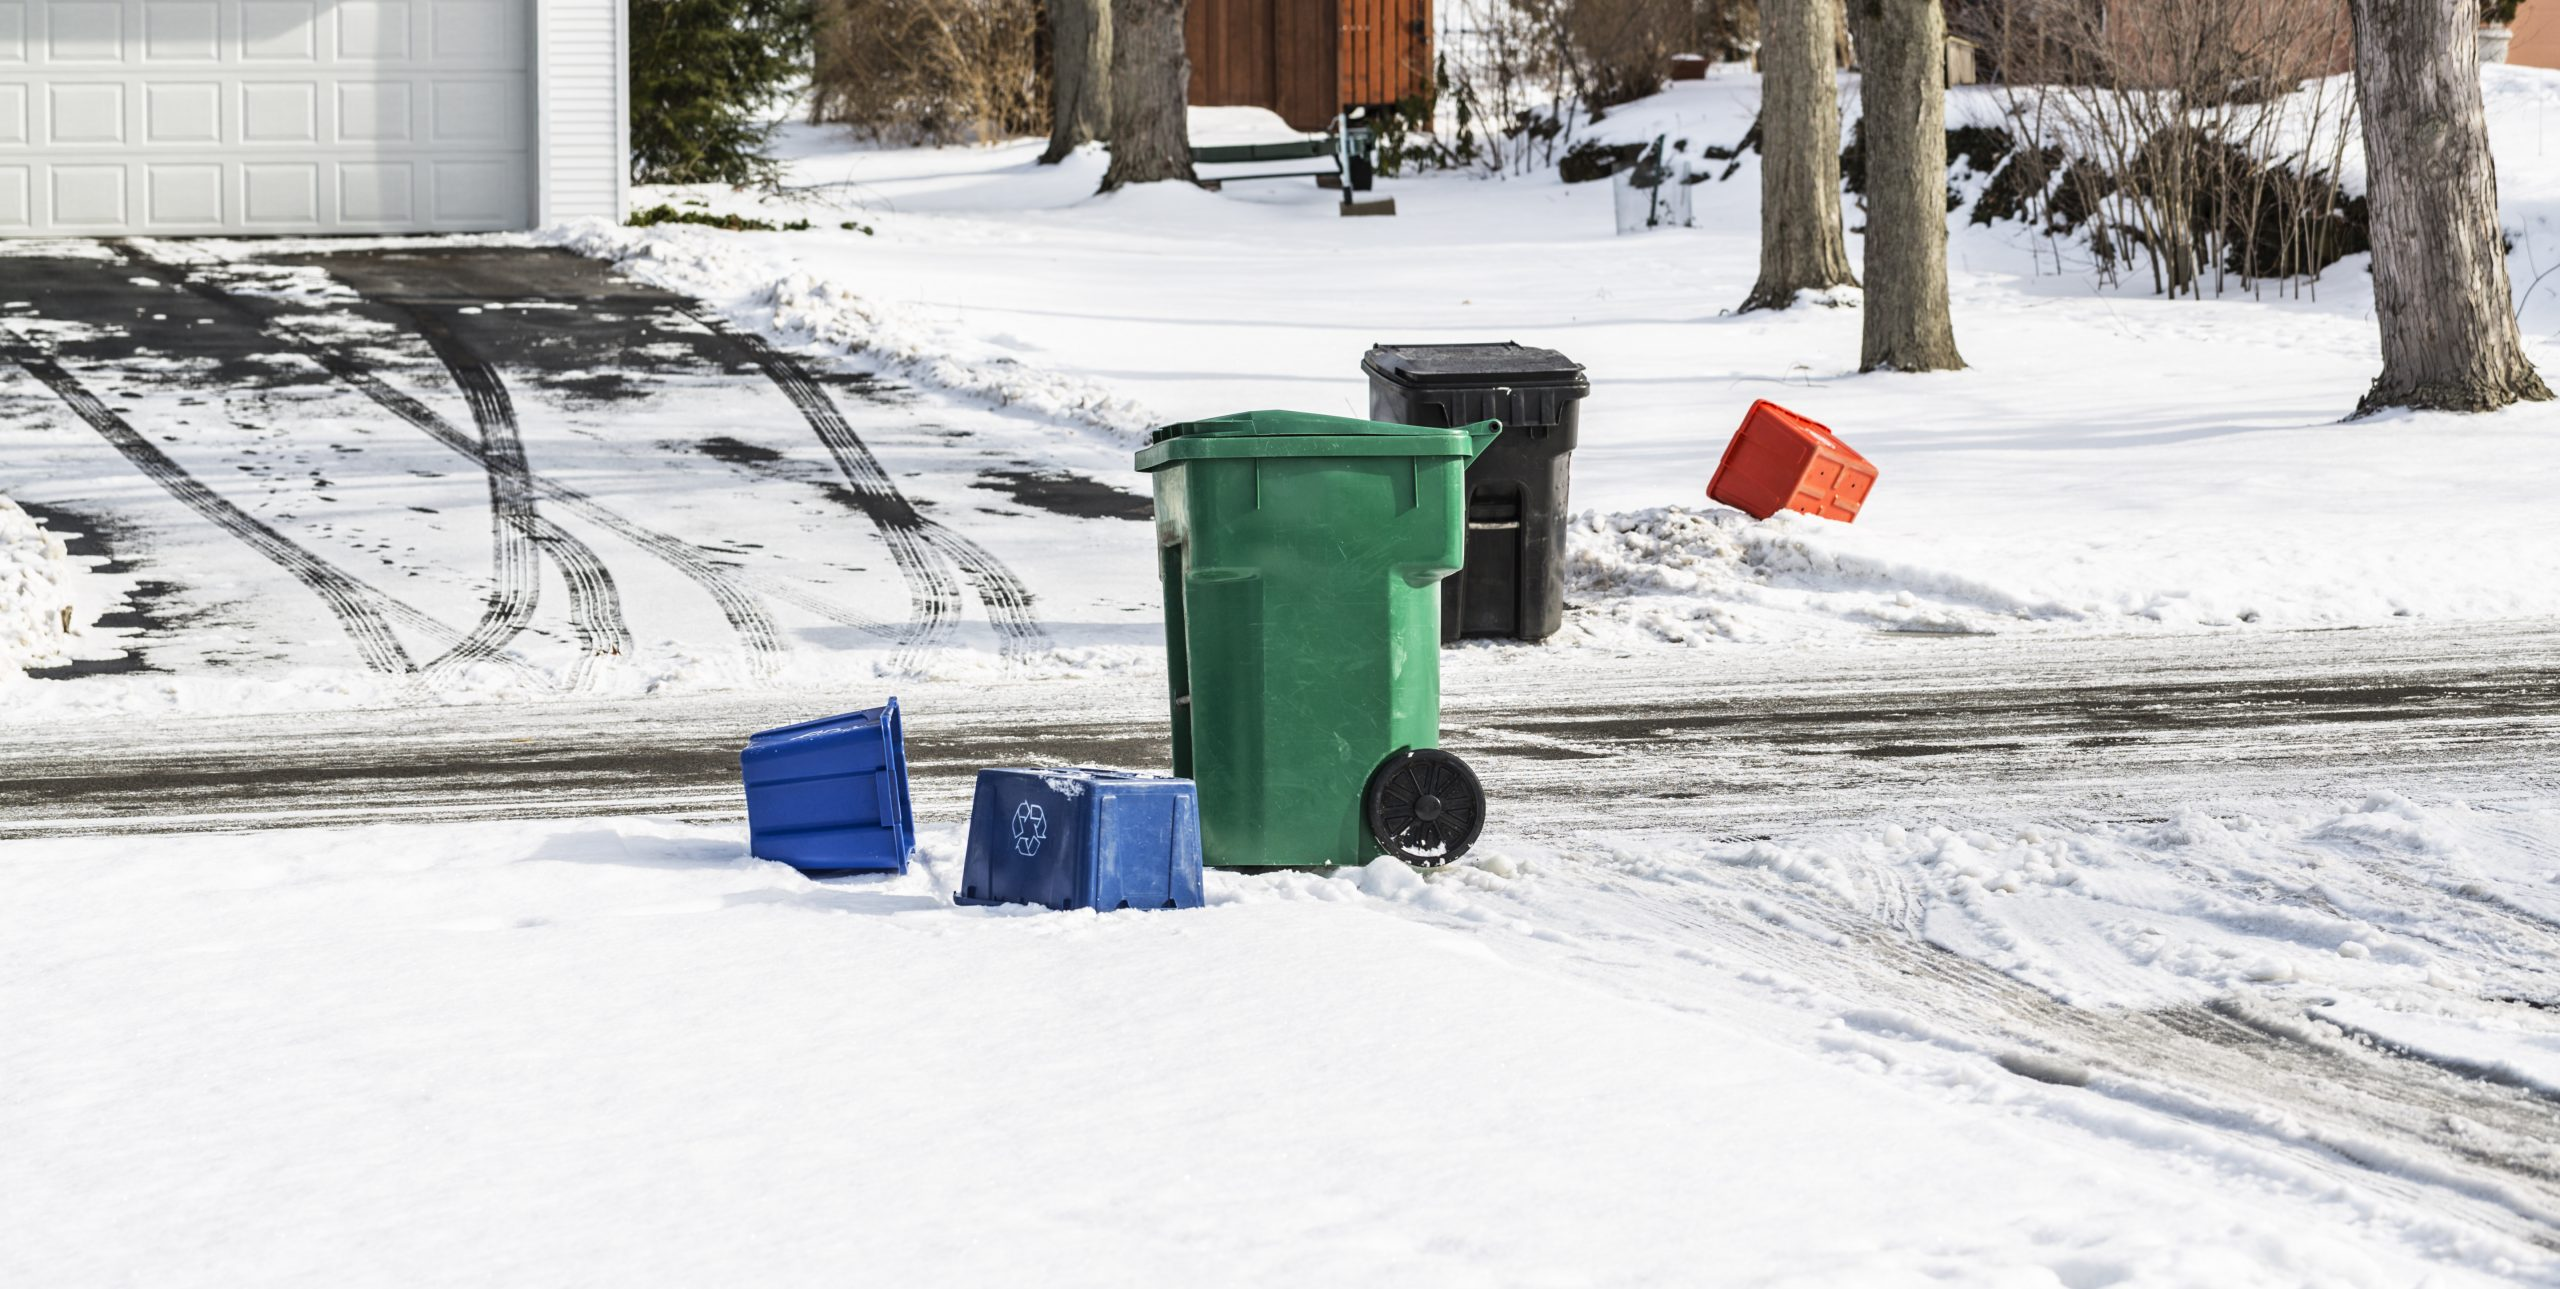 Empty wheeled garbage barrels and recycling containers are scattered/strewn near two opposite driveways along a suburban residential neighborhood street. Winter snow is on the ground and multiple slushy, messy tire tracks cris cross the driveways and the street. Must have been garbage/trash pickup day today.